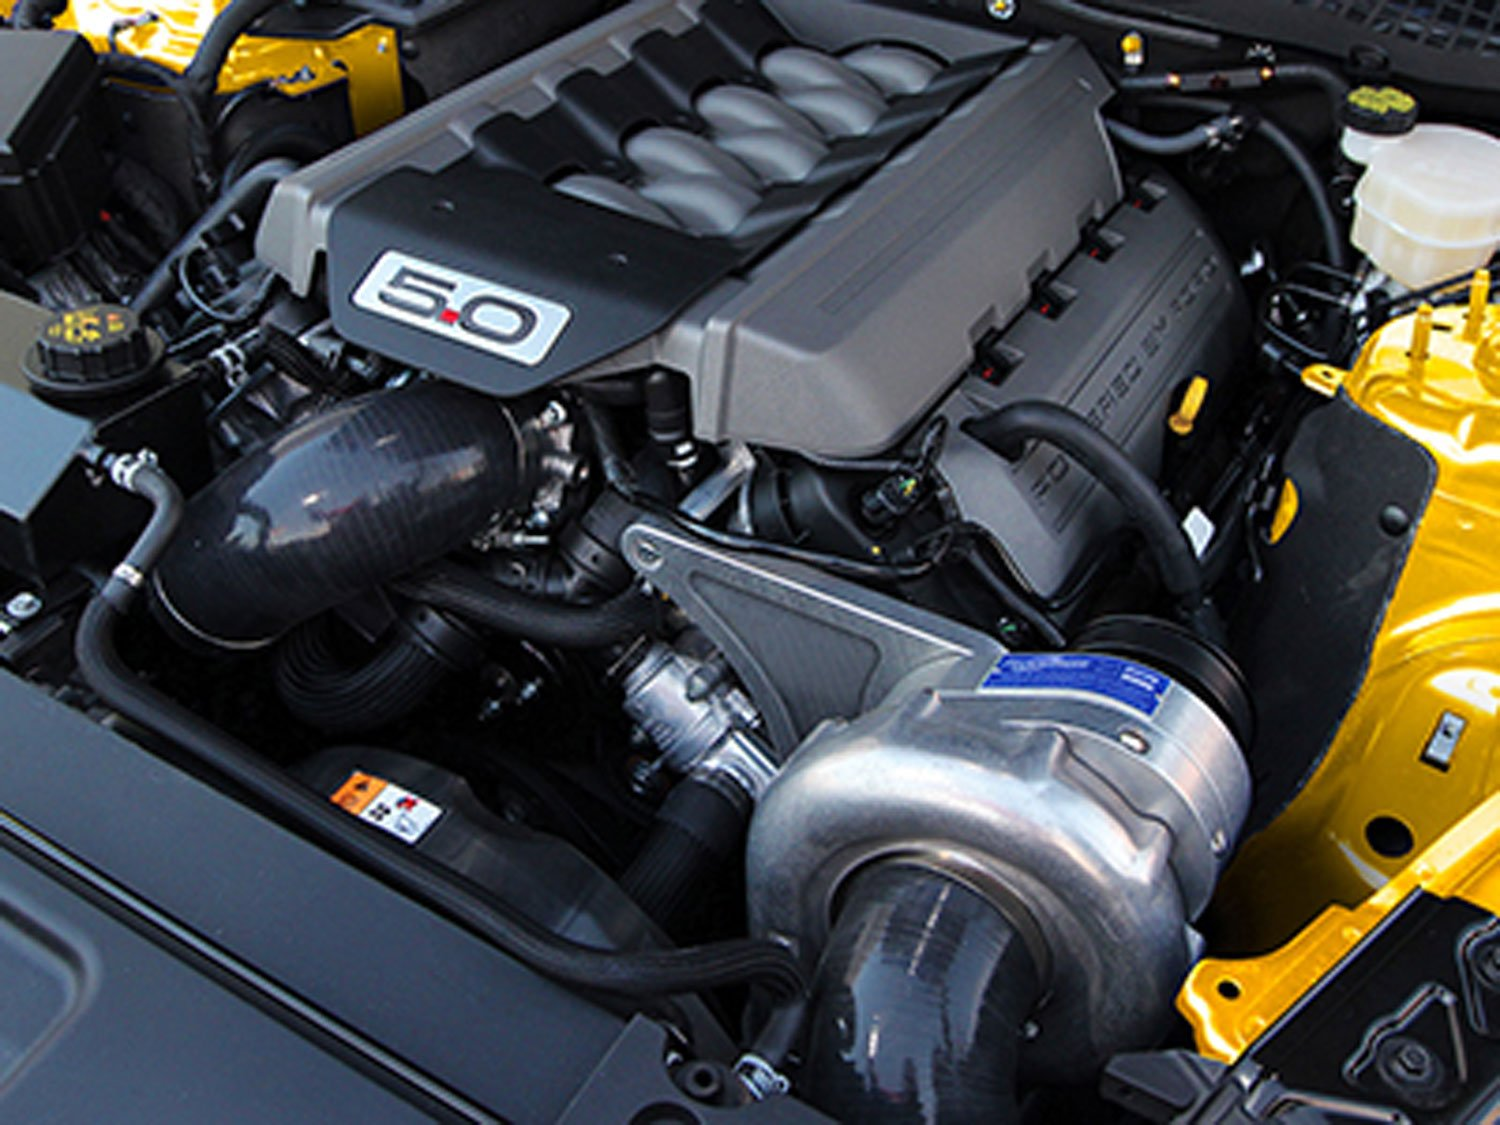 2015 Mustang Gt Supercharger >> Procharger High Output Intercooled Supercharger System P 1sc 1 2015 2017 Mustang Gt 5 0l